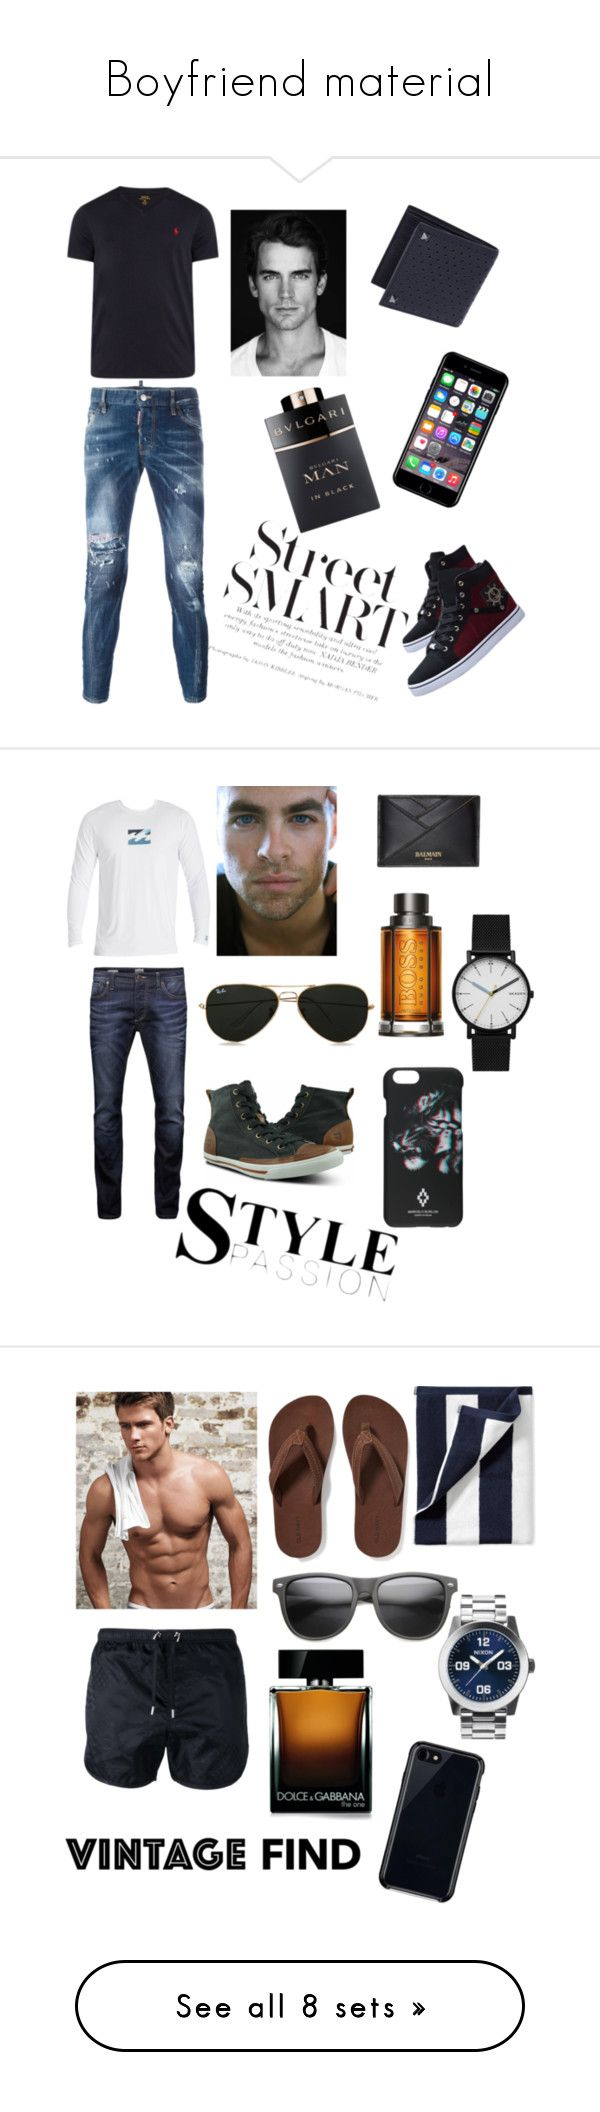 """Boyfriend material"" by alligirl318 ❤ liked on Polyvore featuring Polo Ralph Lauren, Dsquared2, Off-White, Valentino, Bulgari, men's fashion, menswear, Billabong, Jack & Jones and Burnetie"